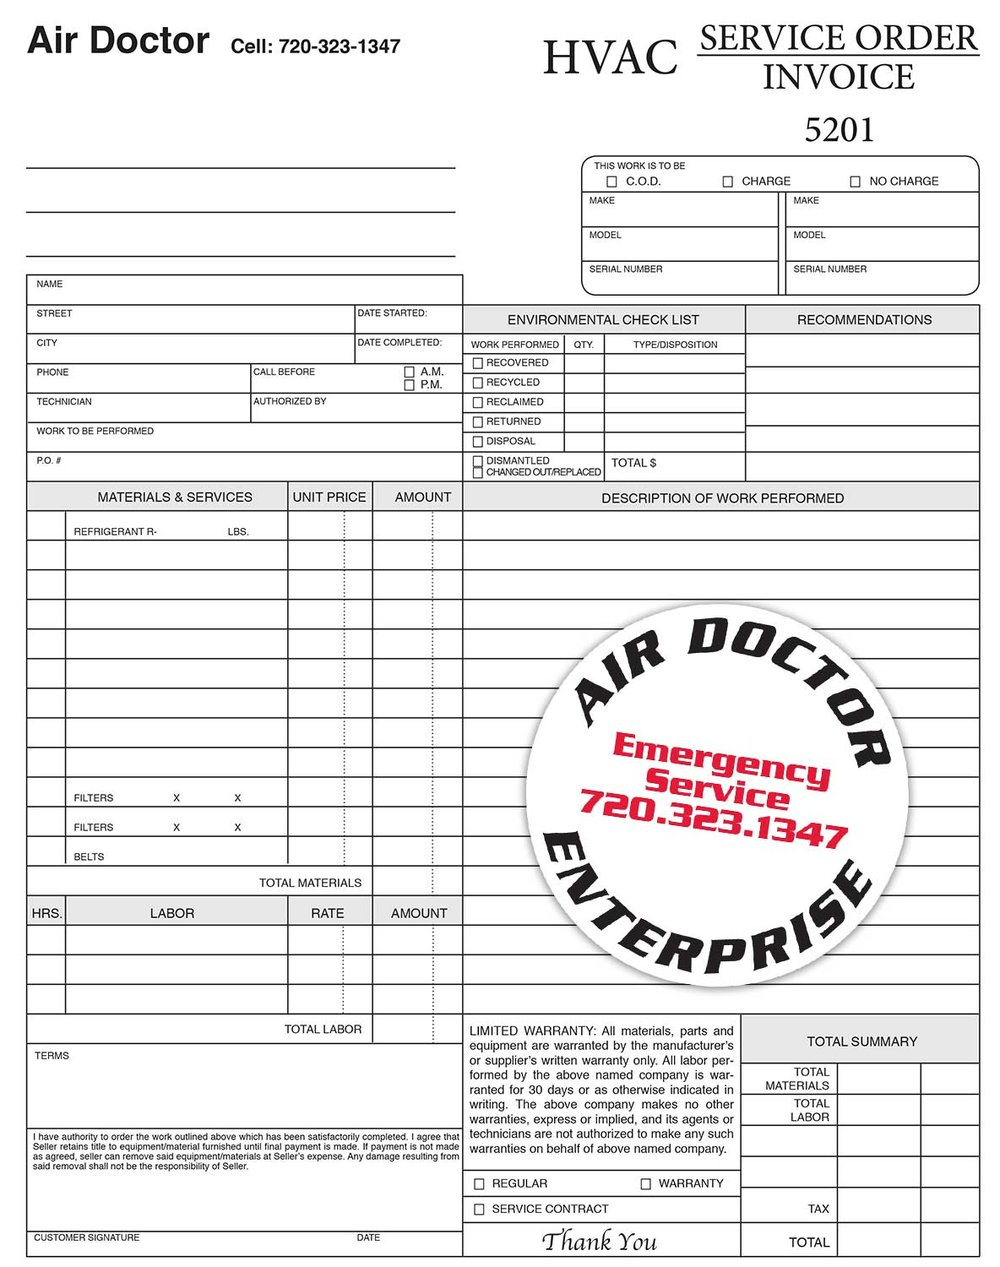 Air-Doctor-Invoice.jpg